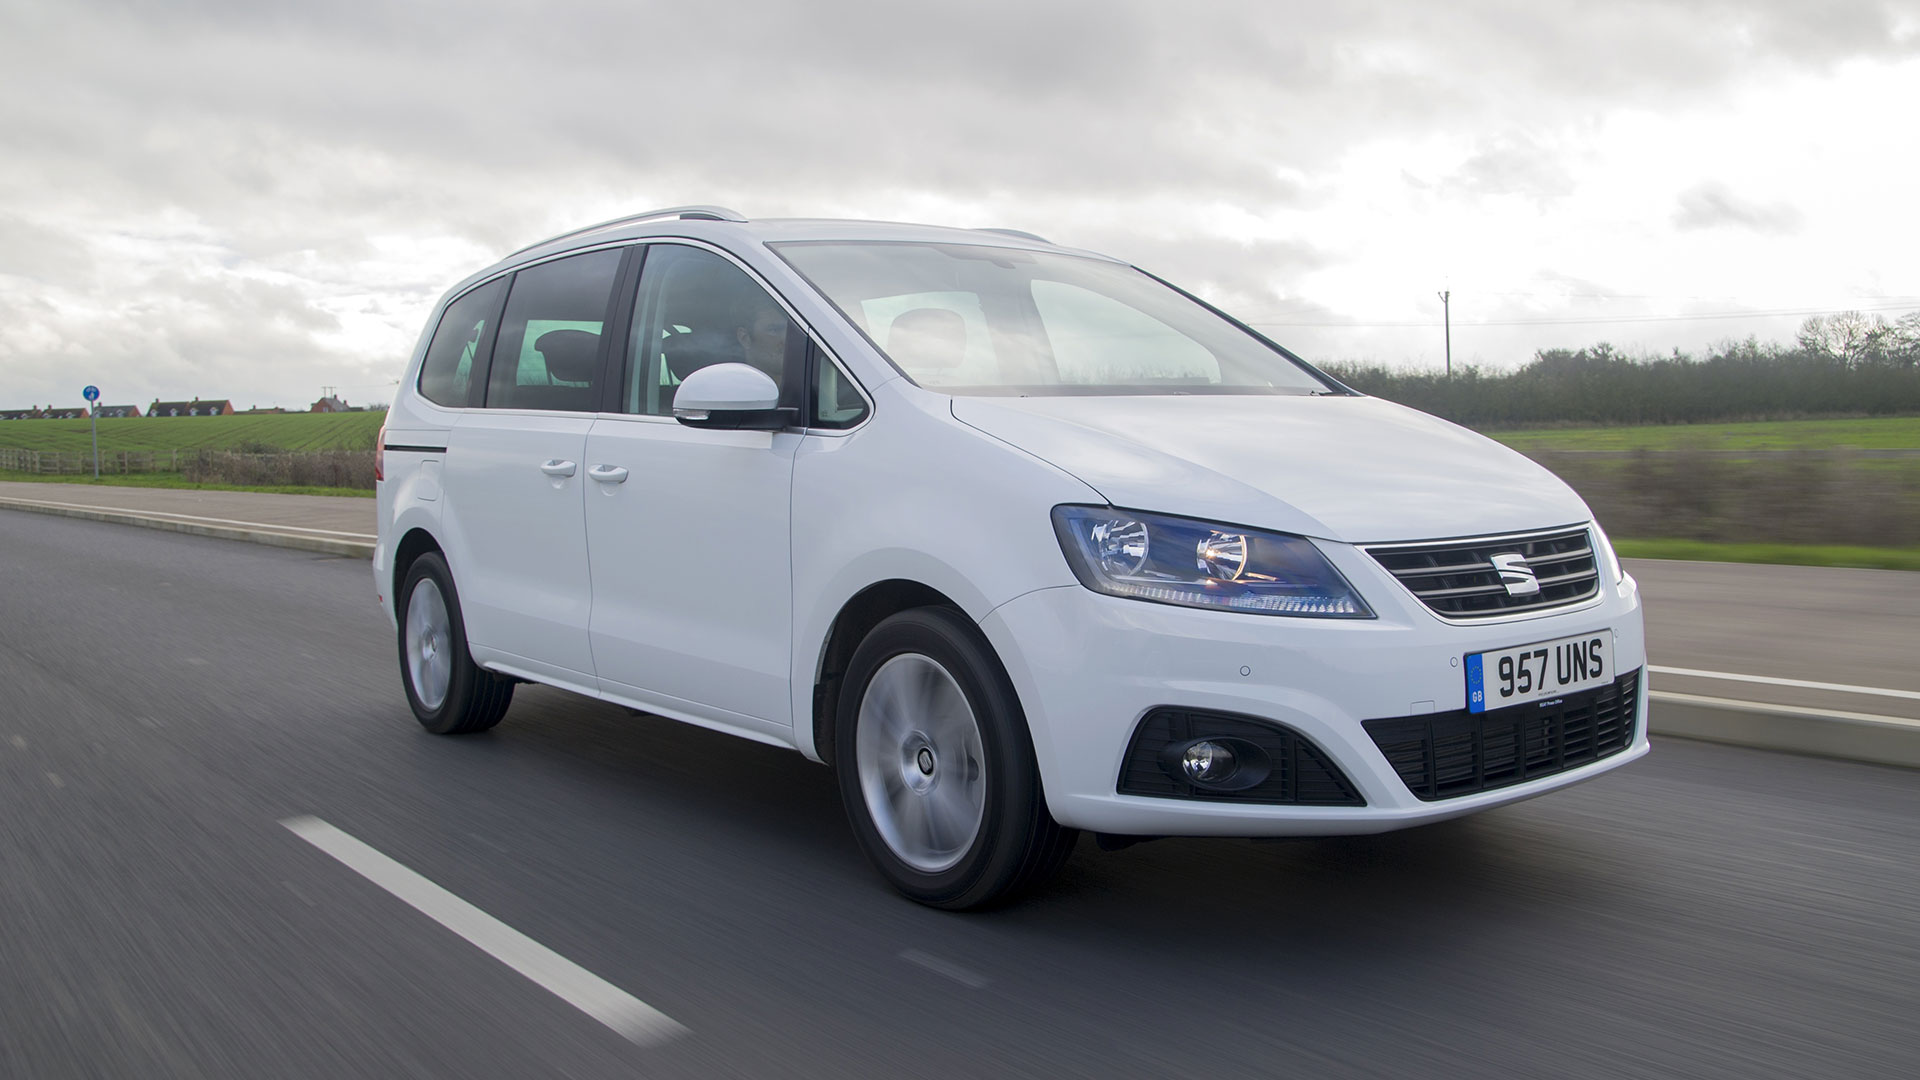 7 Seater Vehicles >> 7 Seater Cars For Sale On Auto Trader Uk